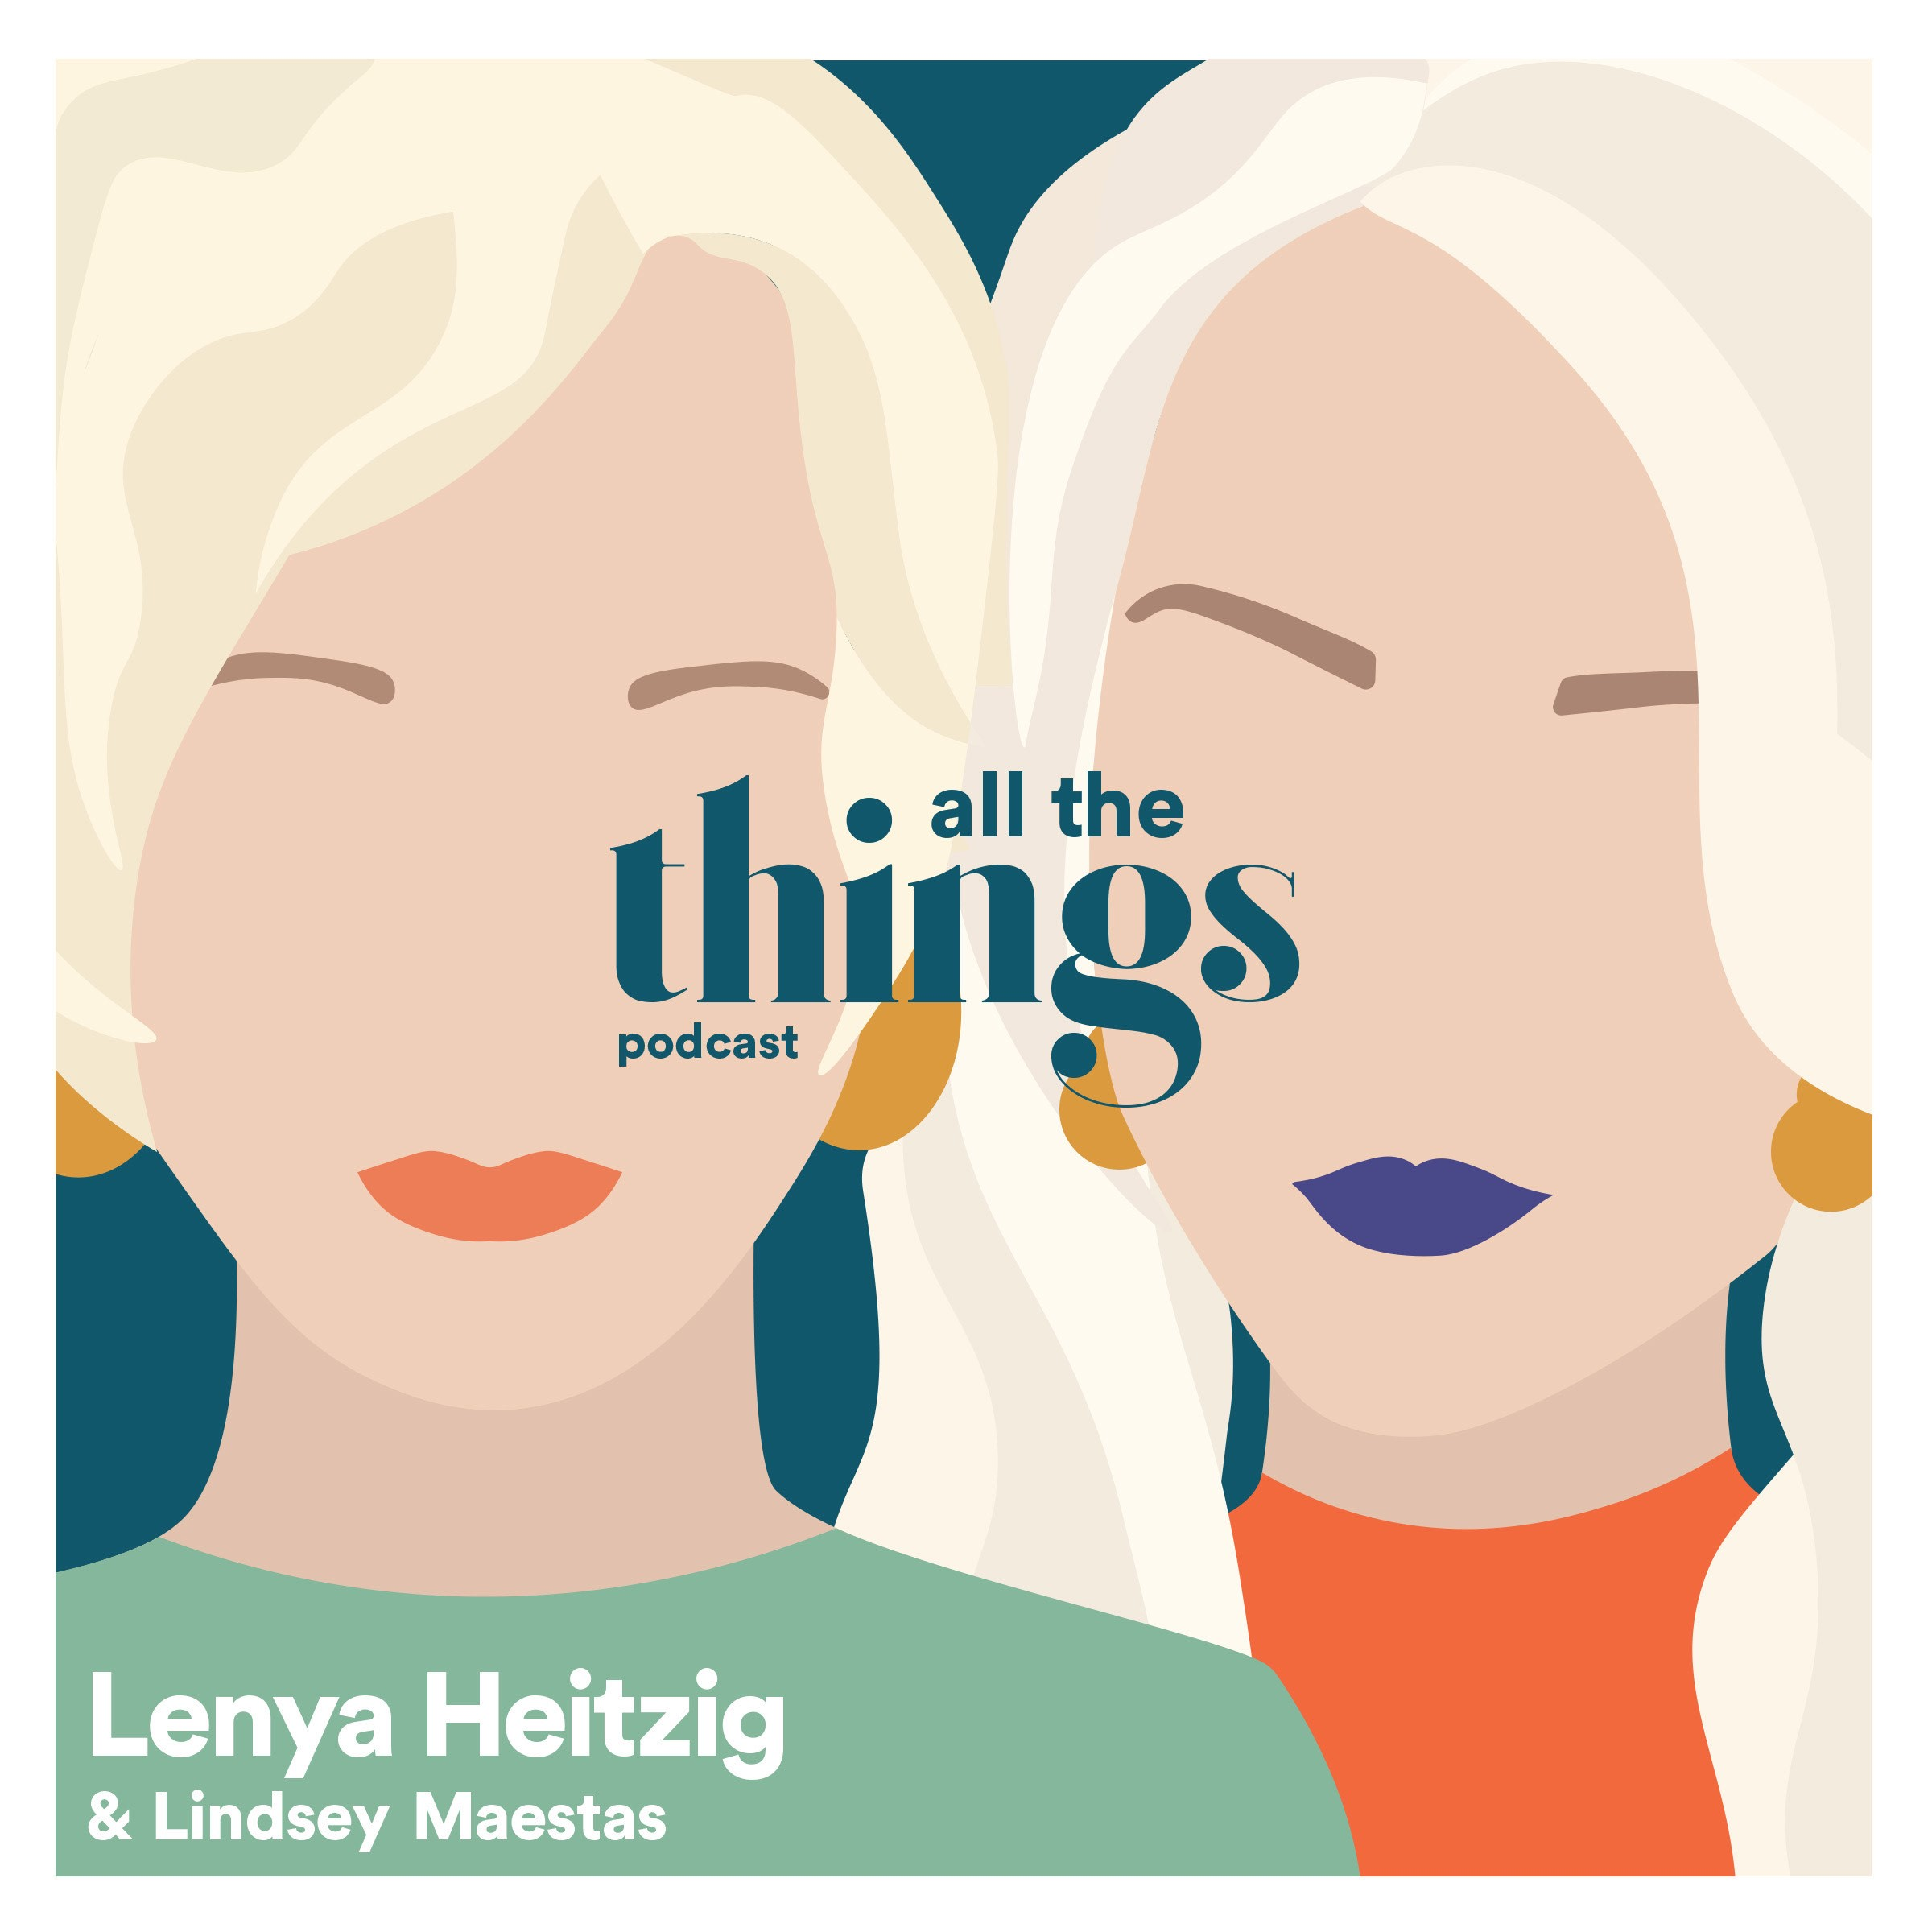 The All the Things Podcast show art